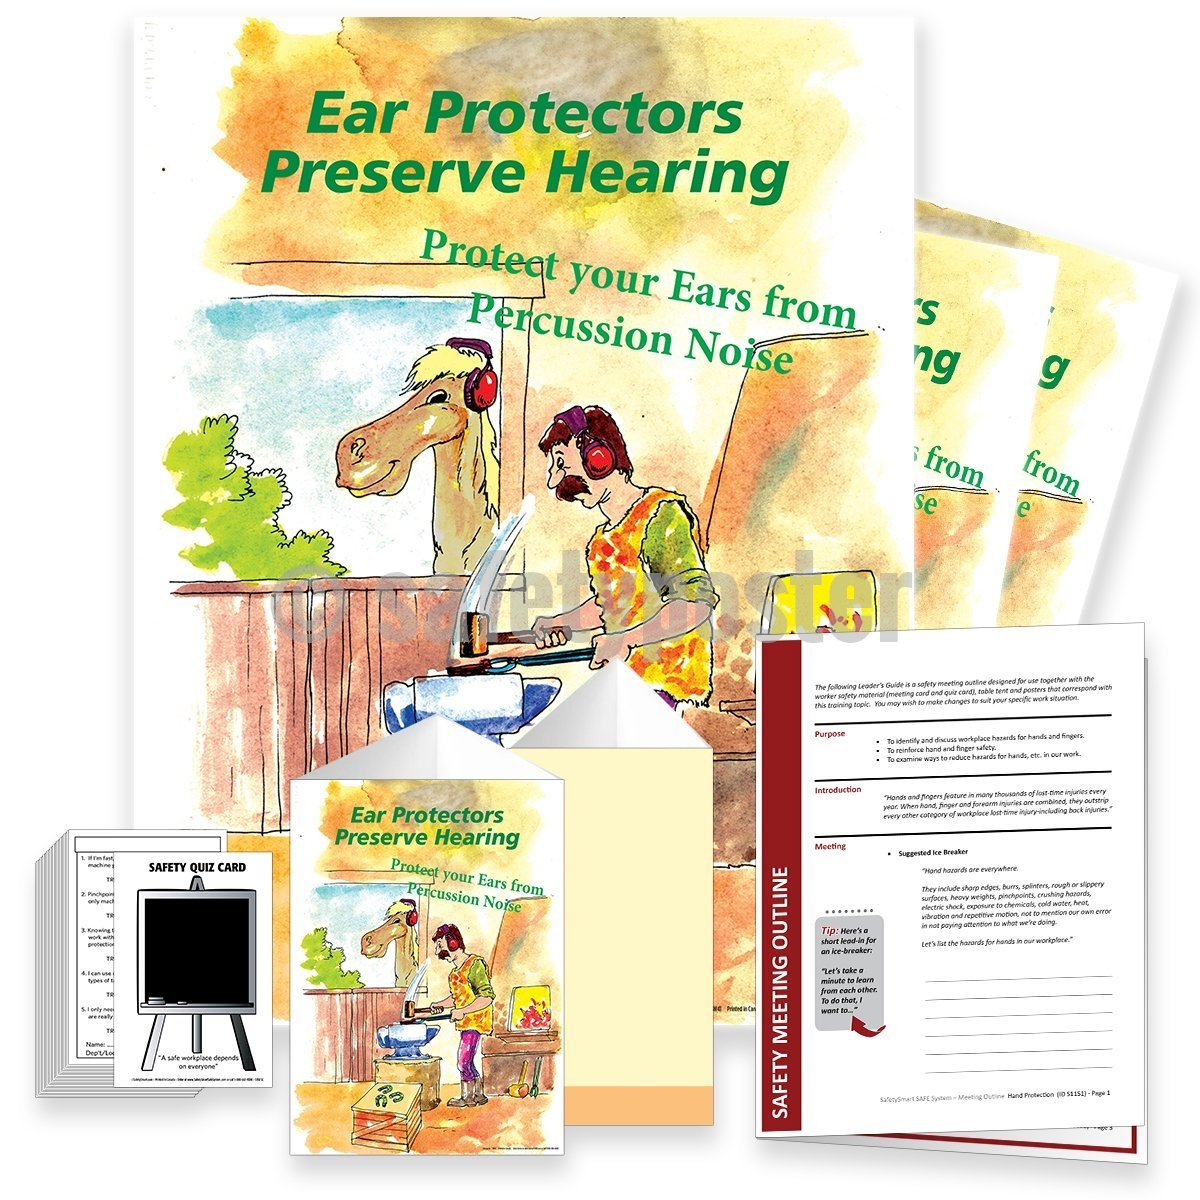 Safety Meeting Kit - Ear Protectors Preserve Hearing